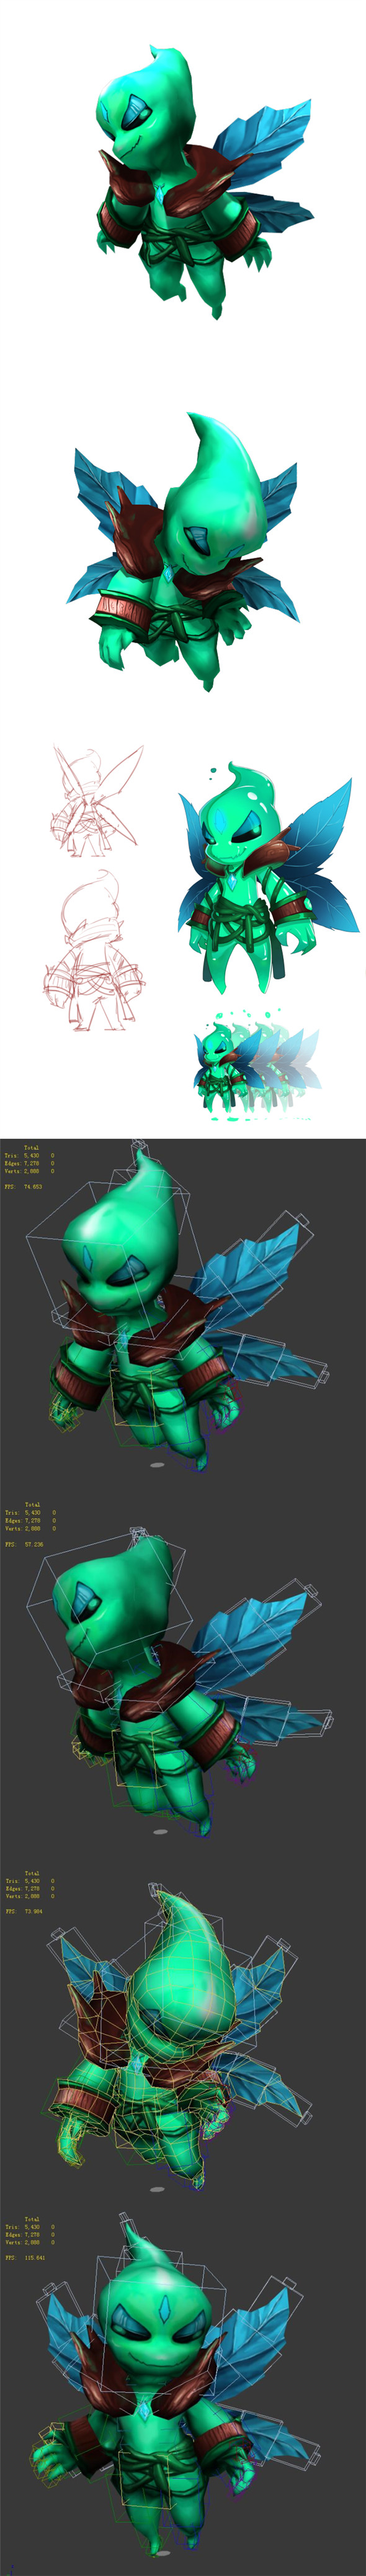 Game animated characters - wood spirit - 3DOcean Item for Sale